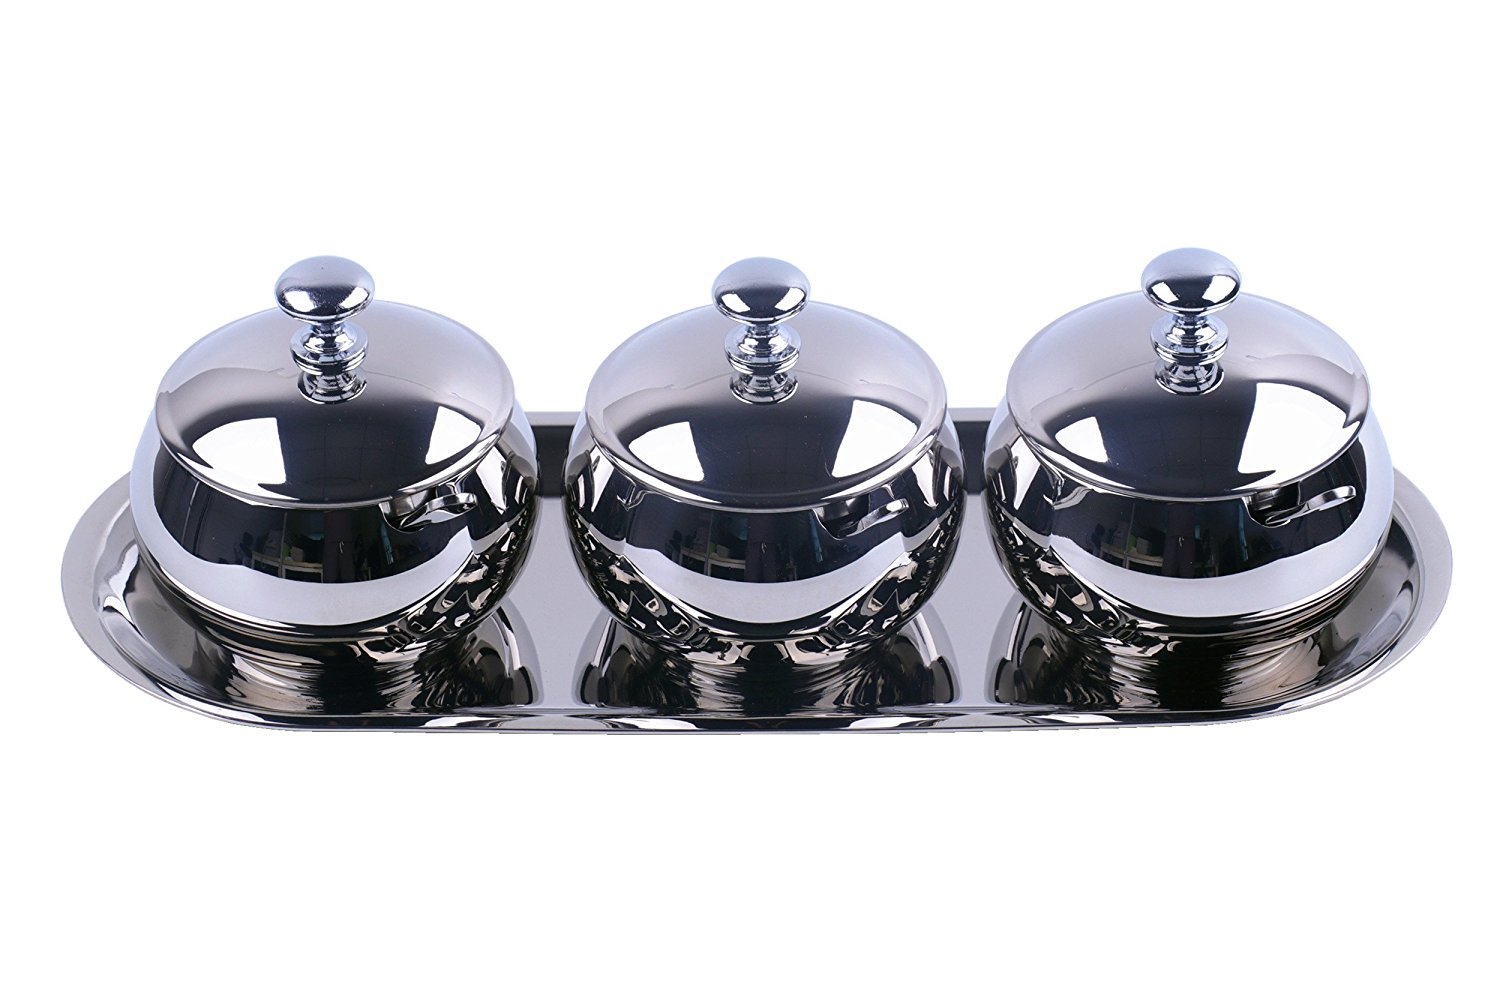 Artmice-Sugar Bowl,Artmice Stainless Steel Sugar Bowl with Lid and Sugar Spoon for Home, Drum Shape, 9.0... by